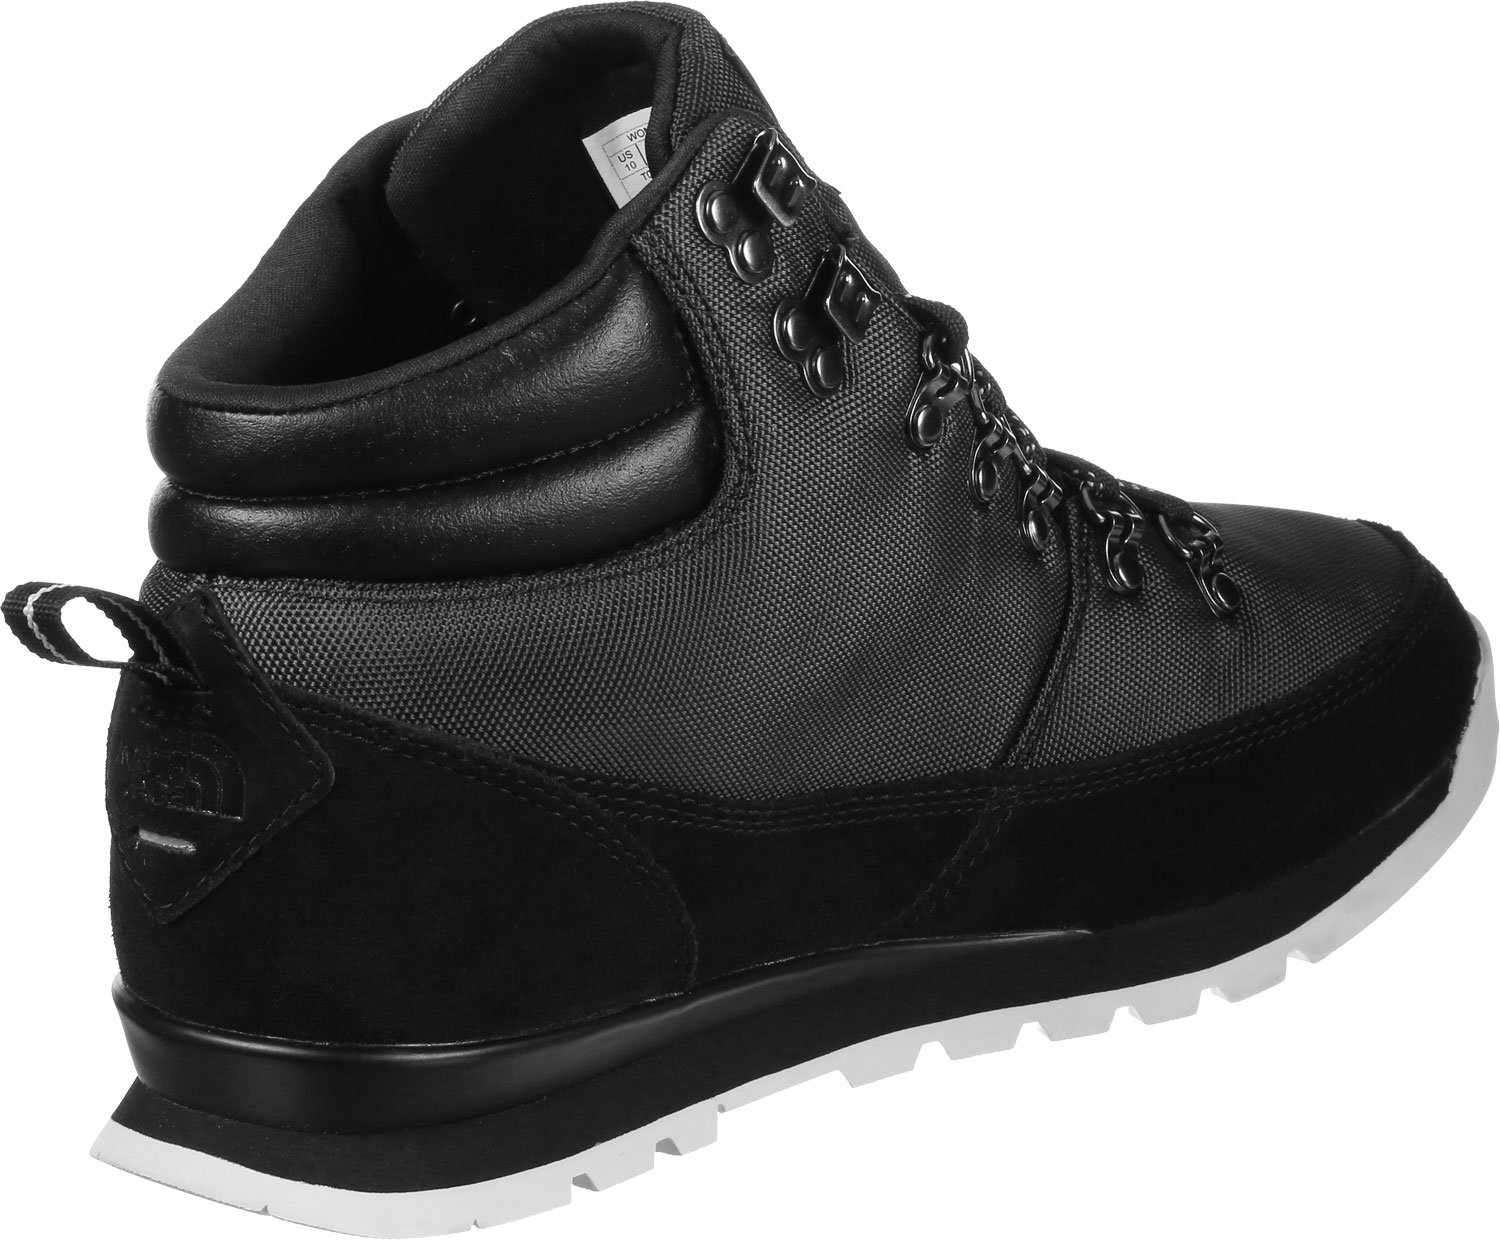 bcb4ae2c3 THE NORTH FACE Women's W Back-to-Berk Redux Walking Boots ...